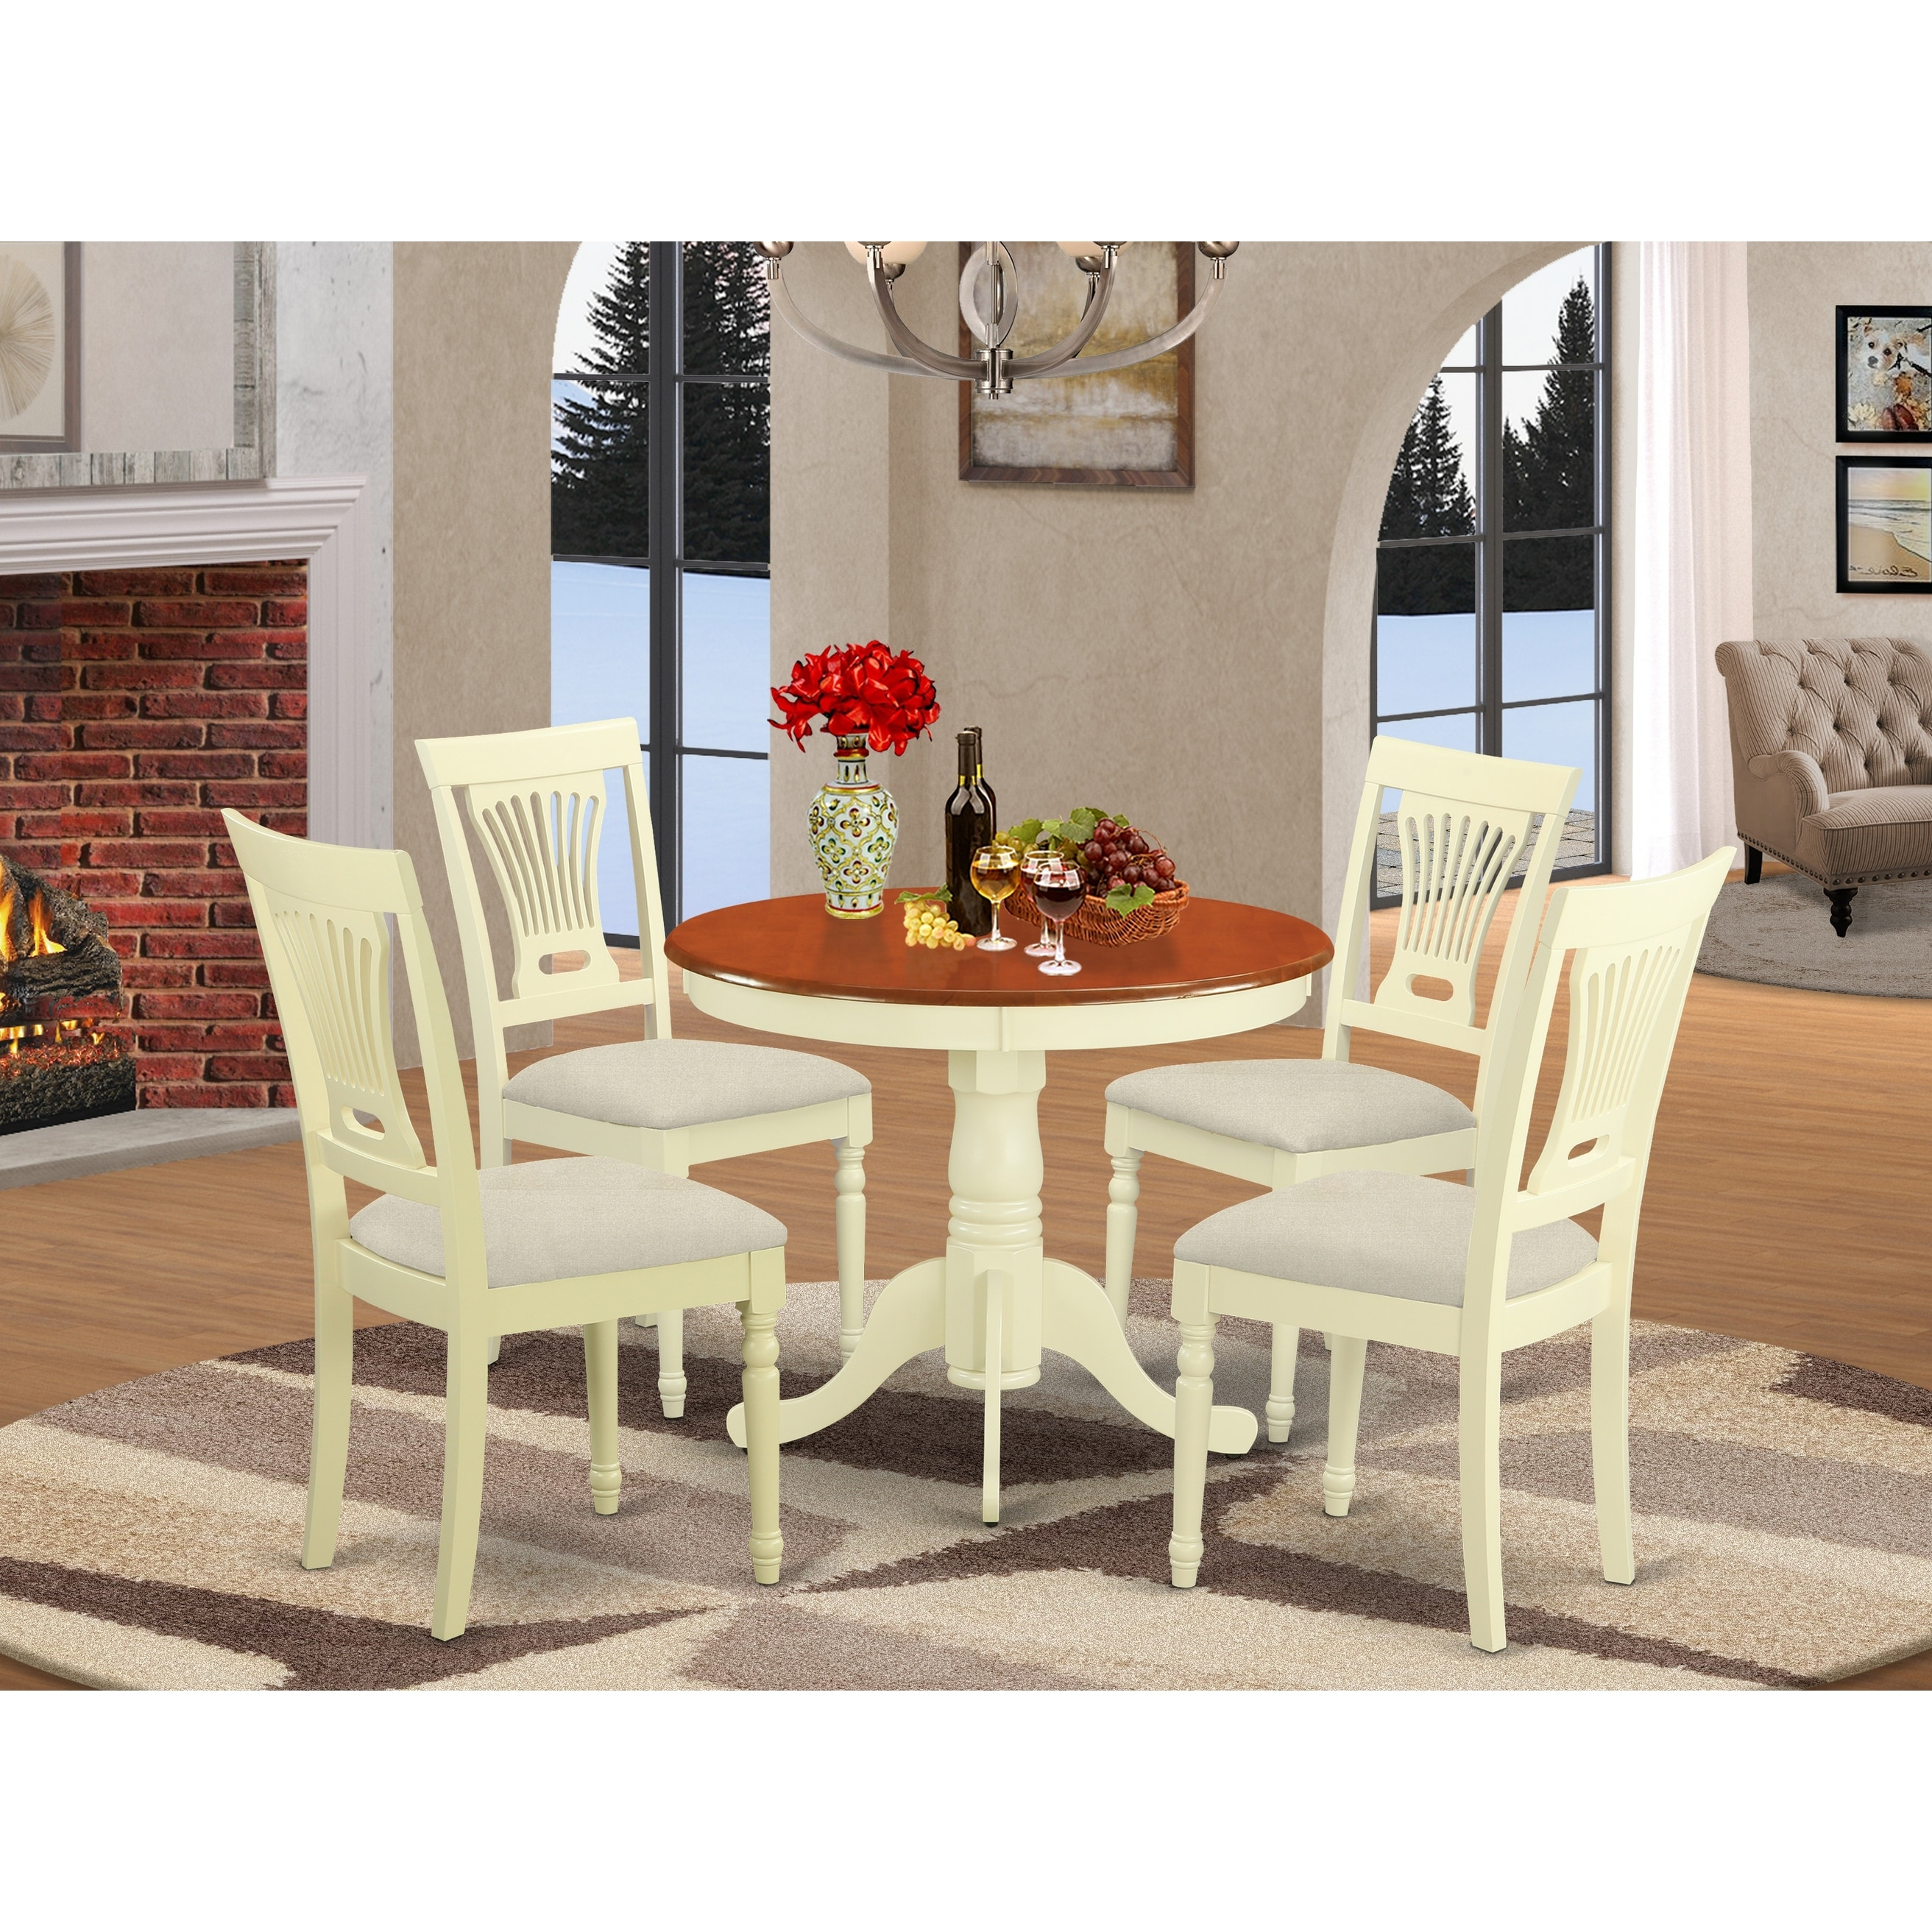 5 Piece Kitchen Table Set And 4 Chairs For Dining Room Overstock 10195736